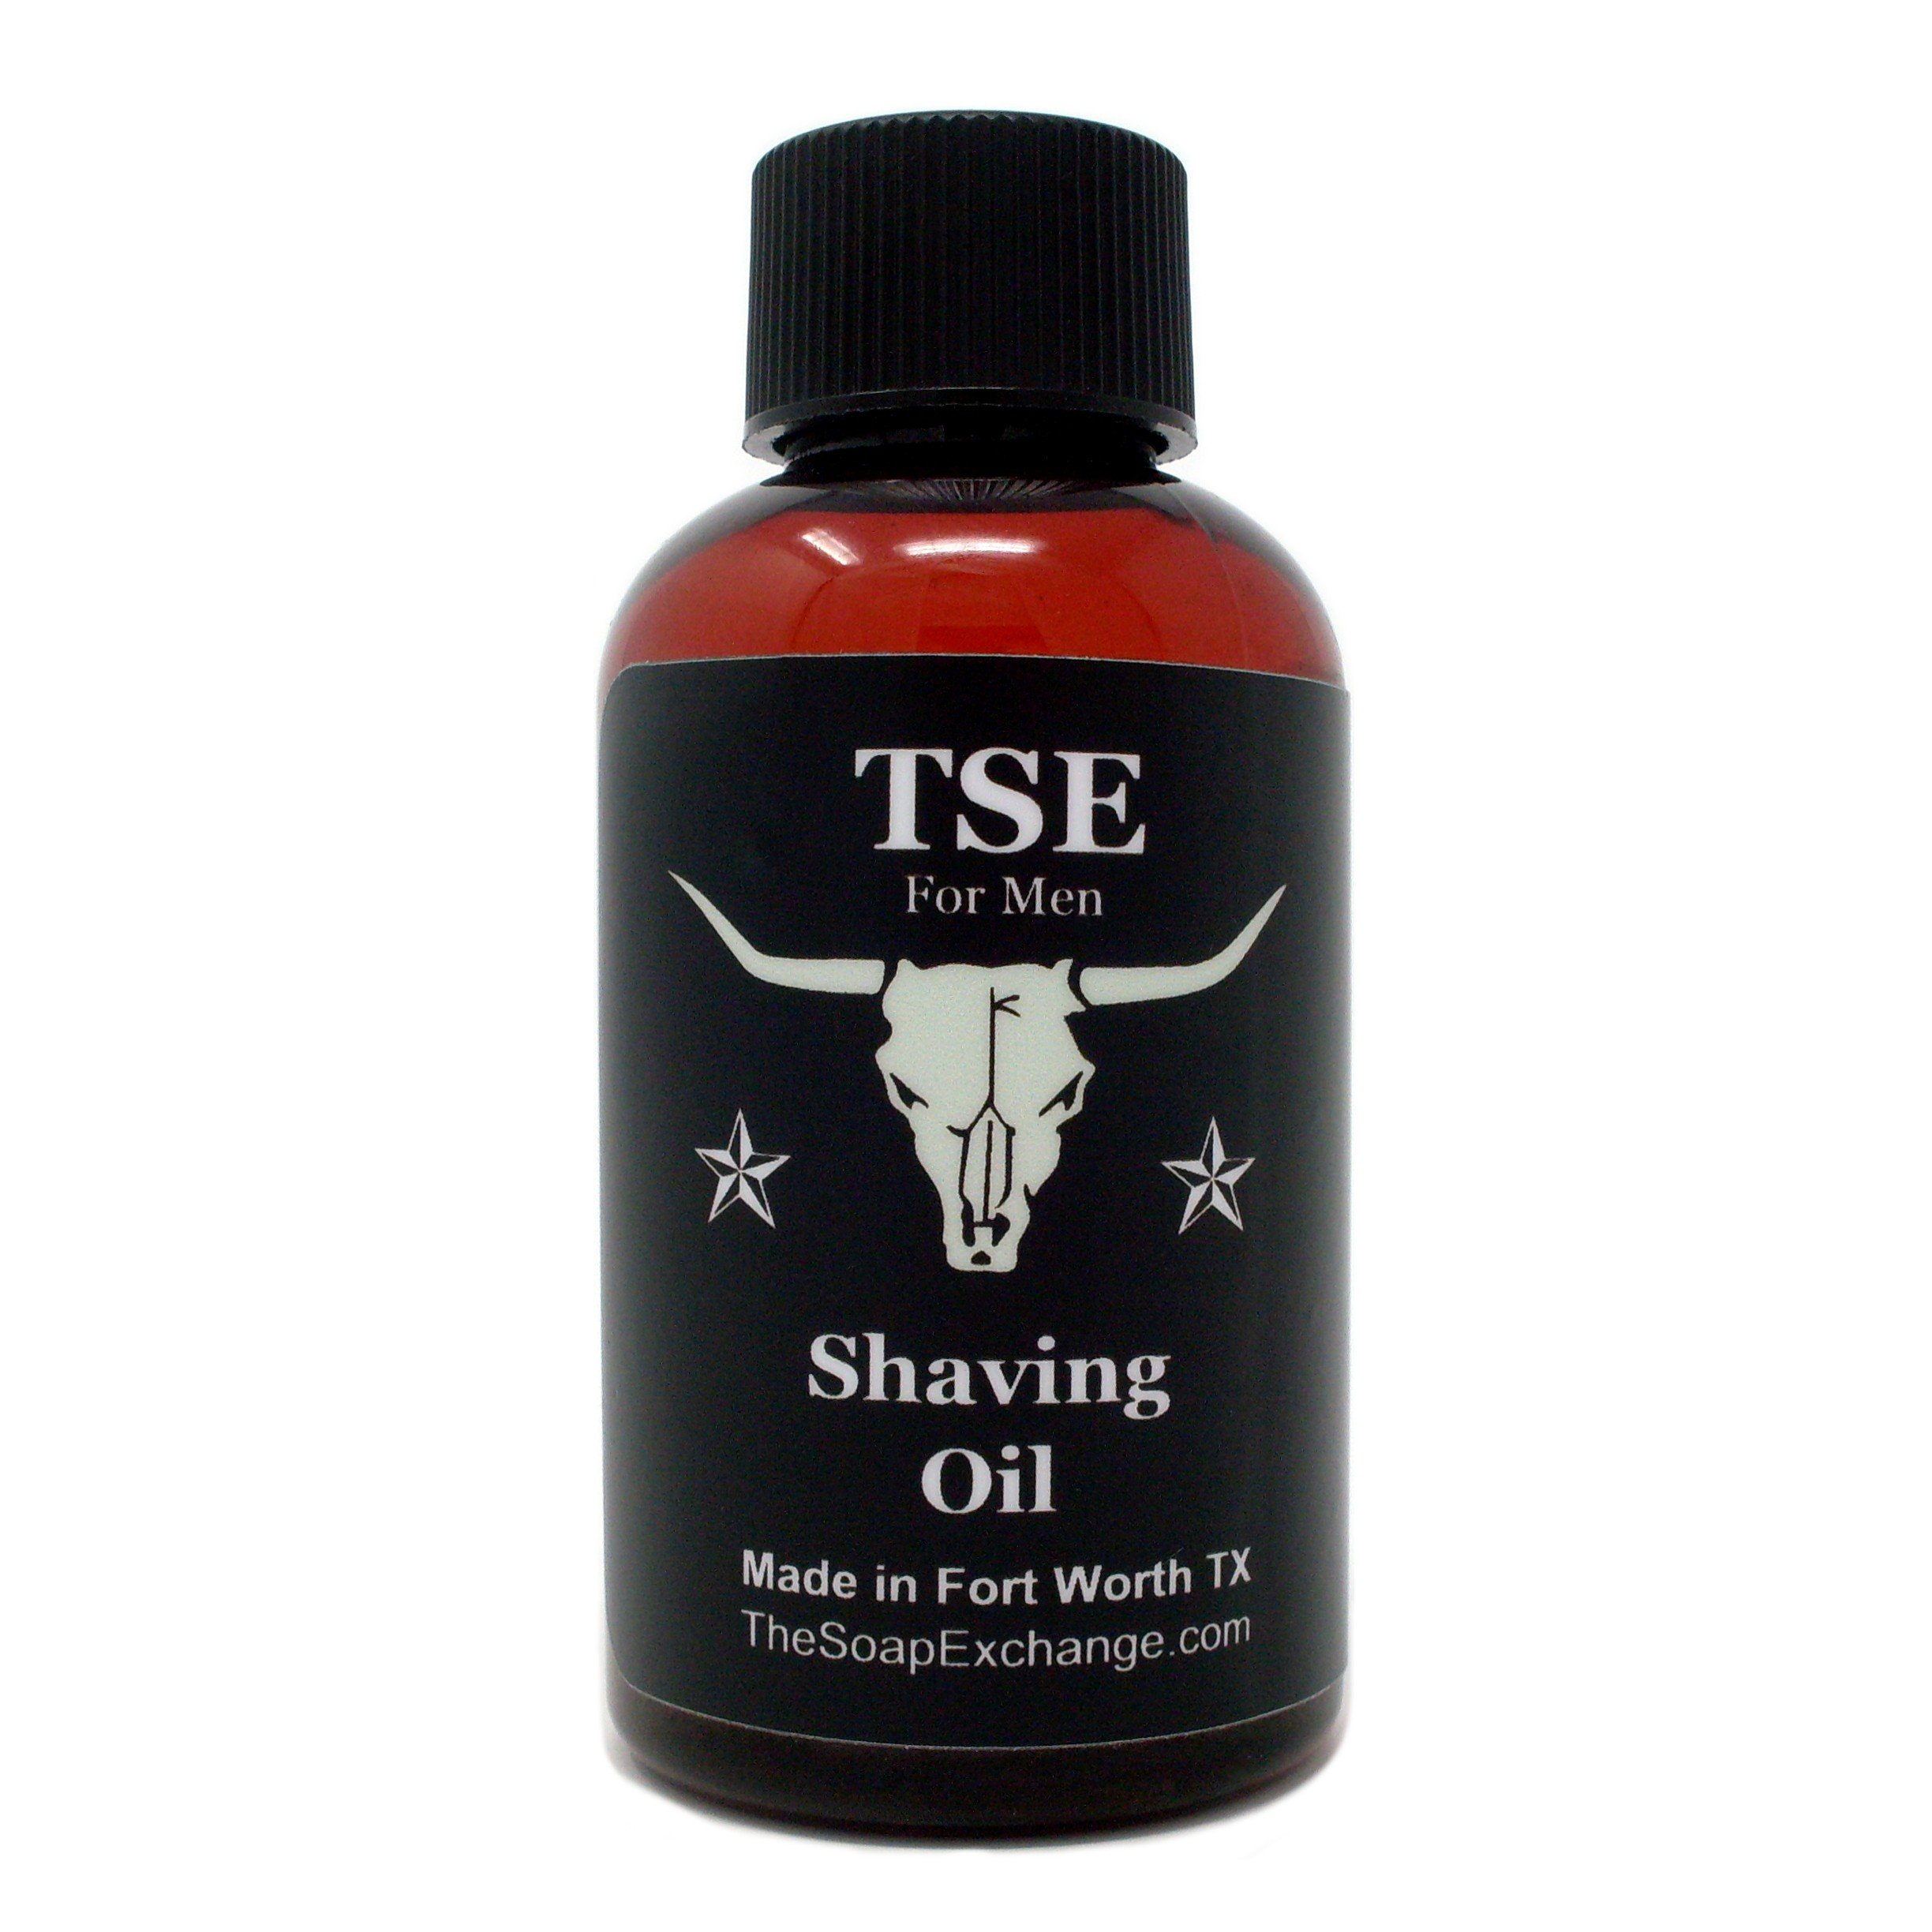 TSE for Men Pre-Shave Oil - Beach Bum Scent - Hand Crafted 2 fl oz/60 ml Ultra Glide, Premium Lubricating, Natural Ingredients, For Face or Head, Made in the USA.